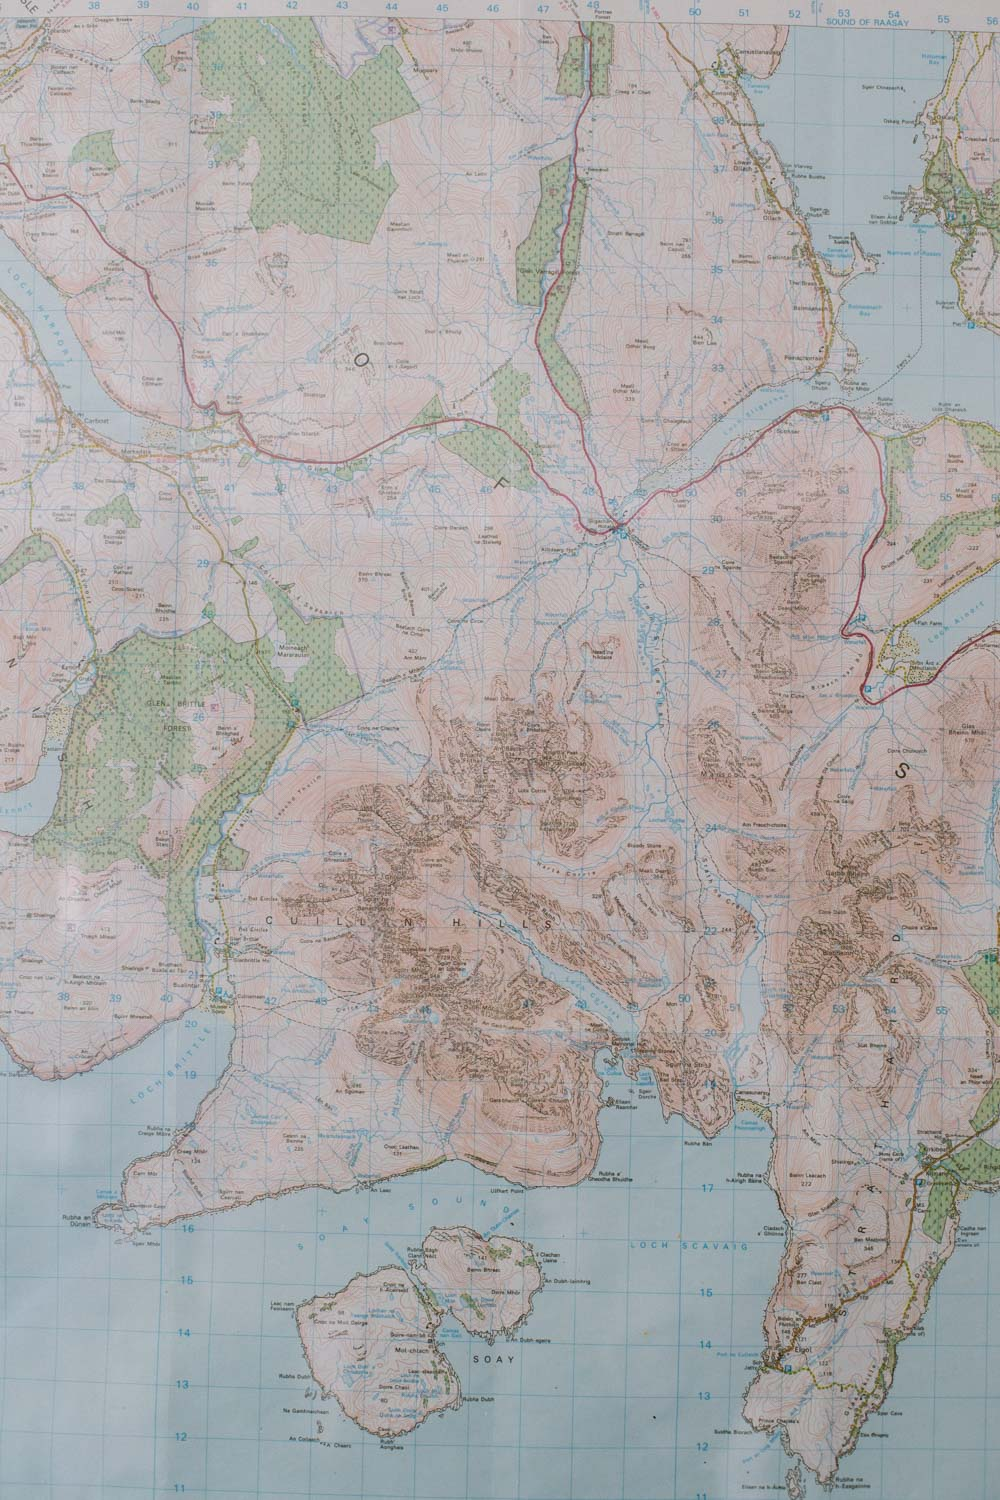 Isle of Skye map photo